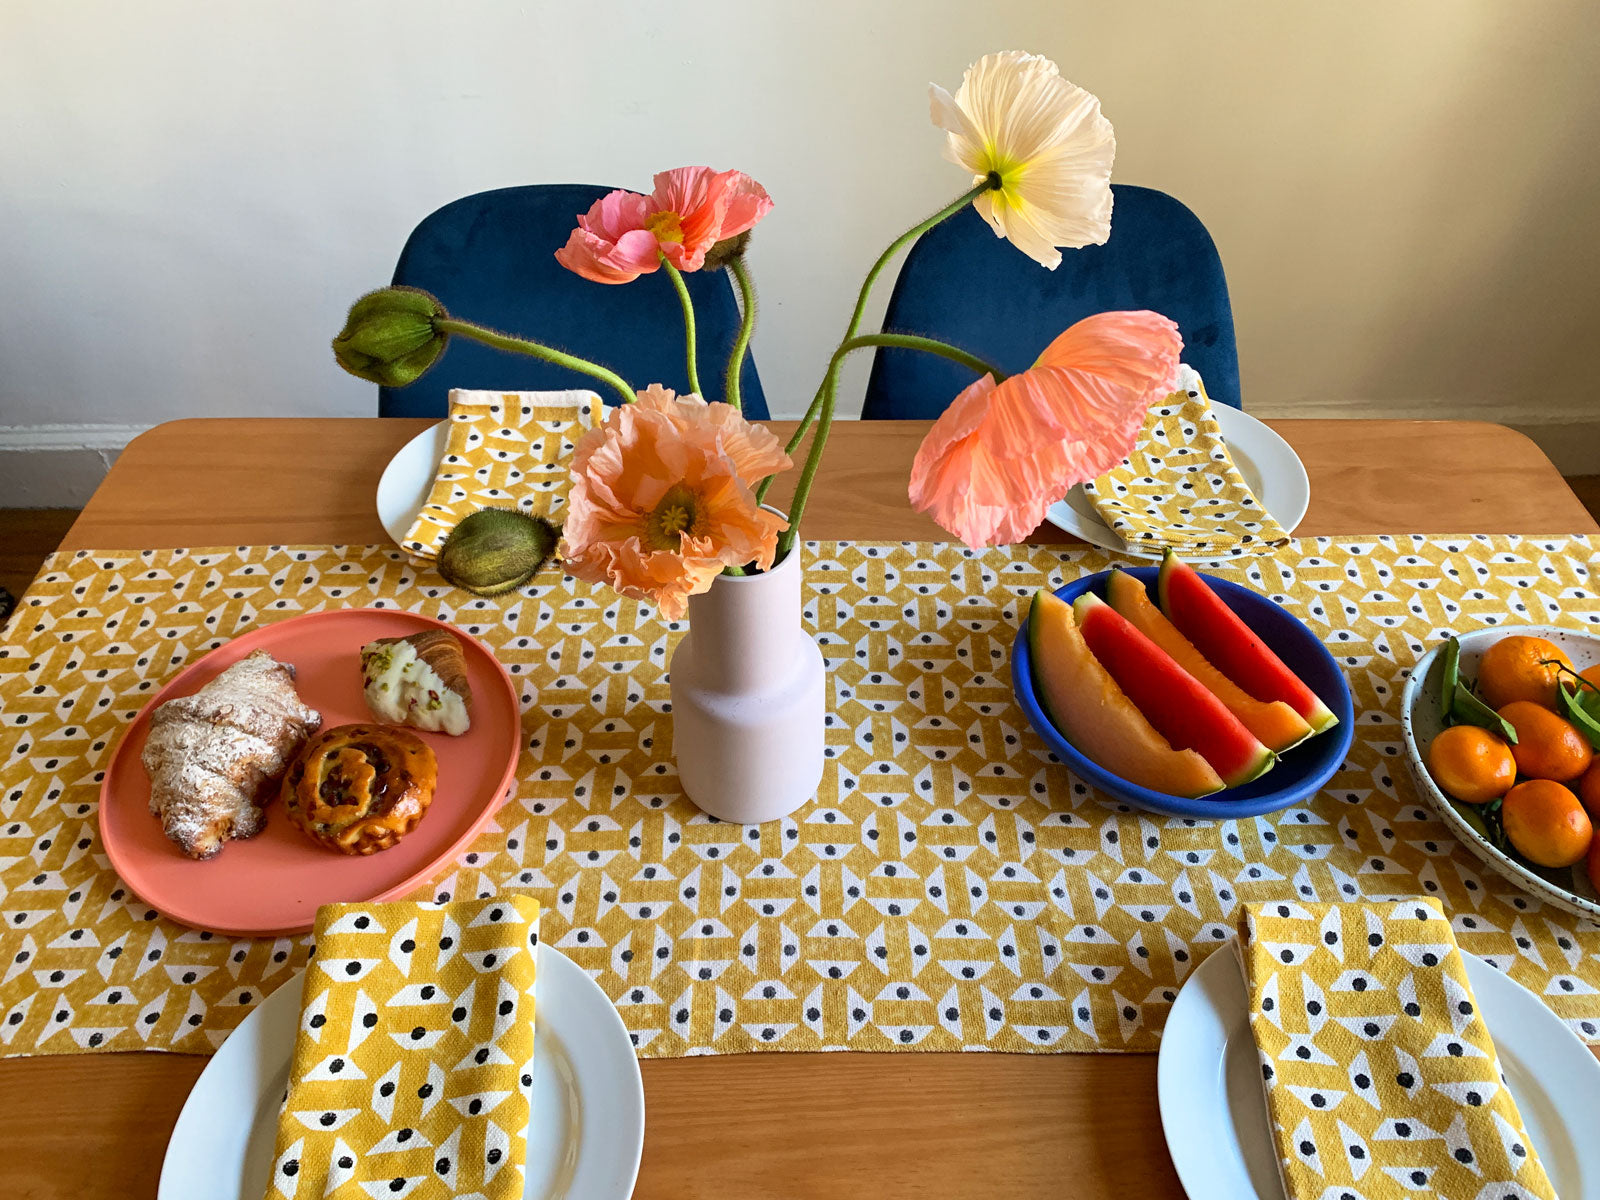 Summery yellow table linens by SUNDAY/MONDAY. Hand block printed geometric pattern in yellow.